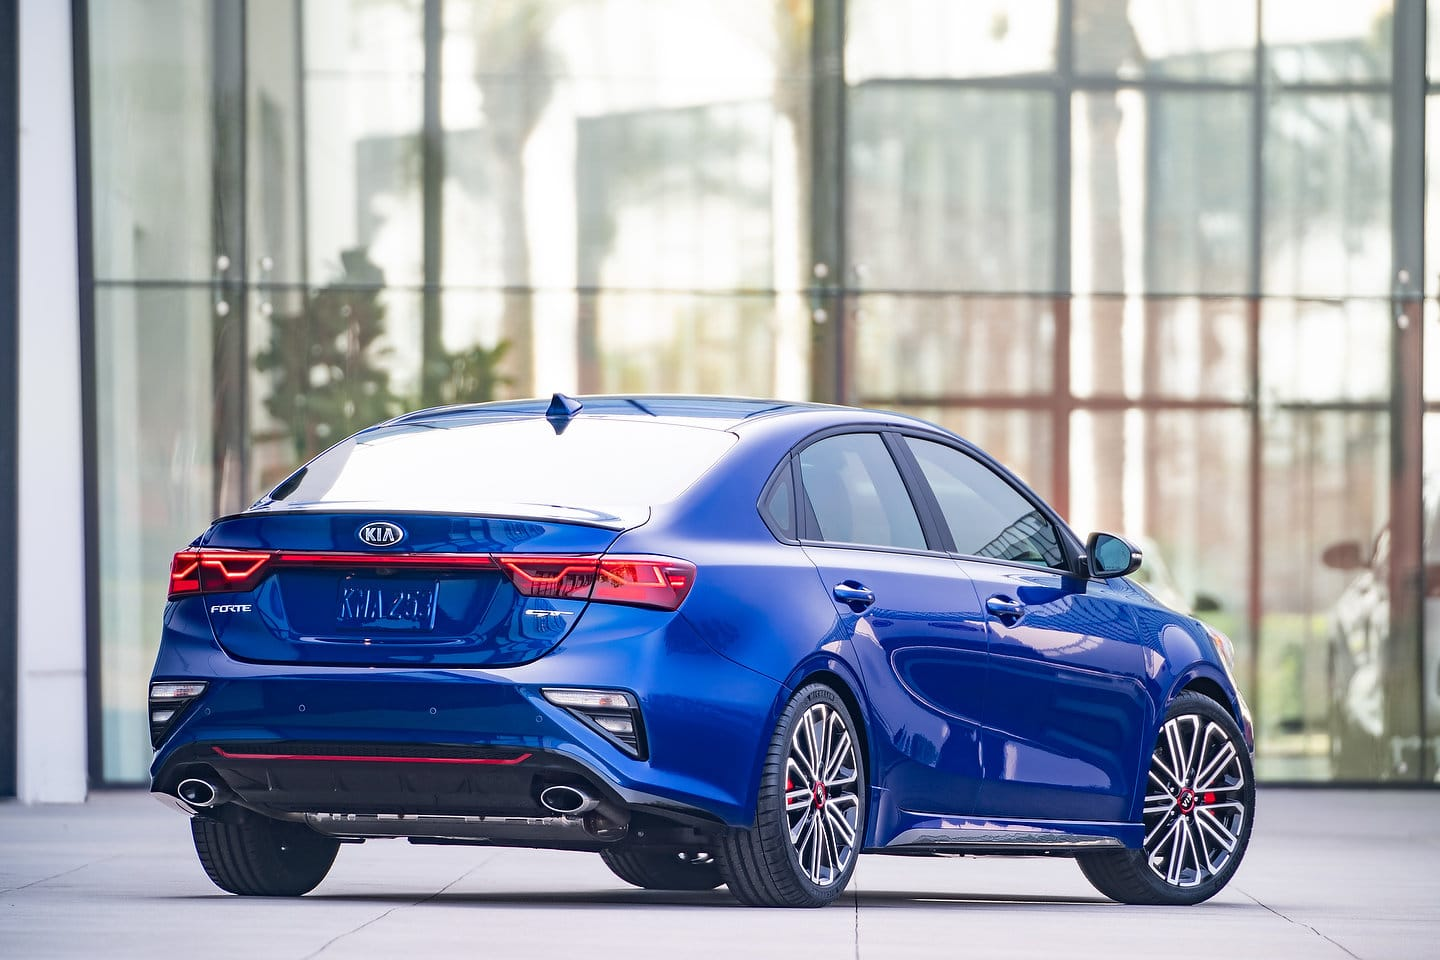 2020 Kia Forte New Model and Performance